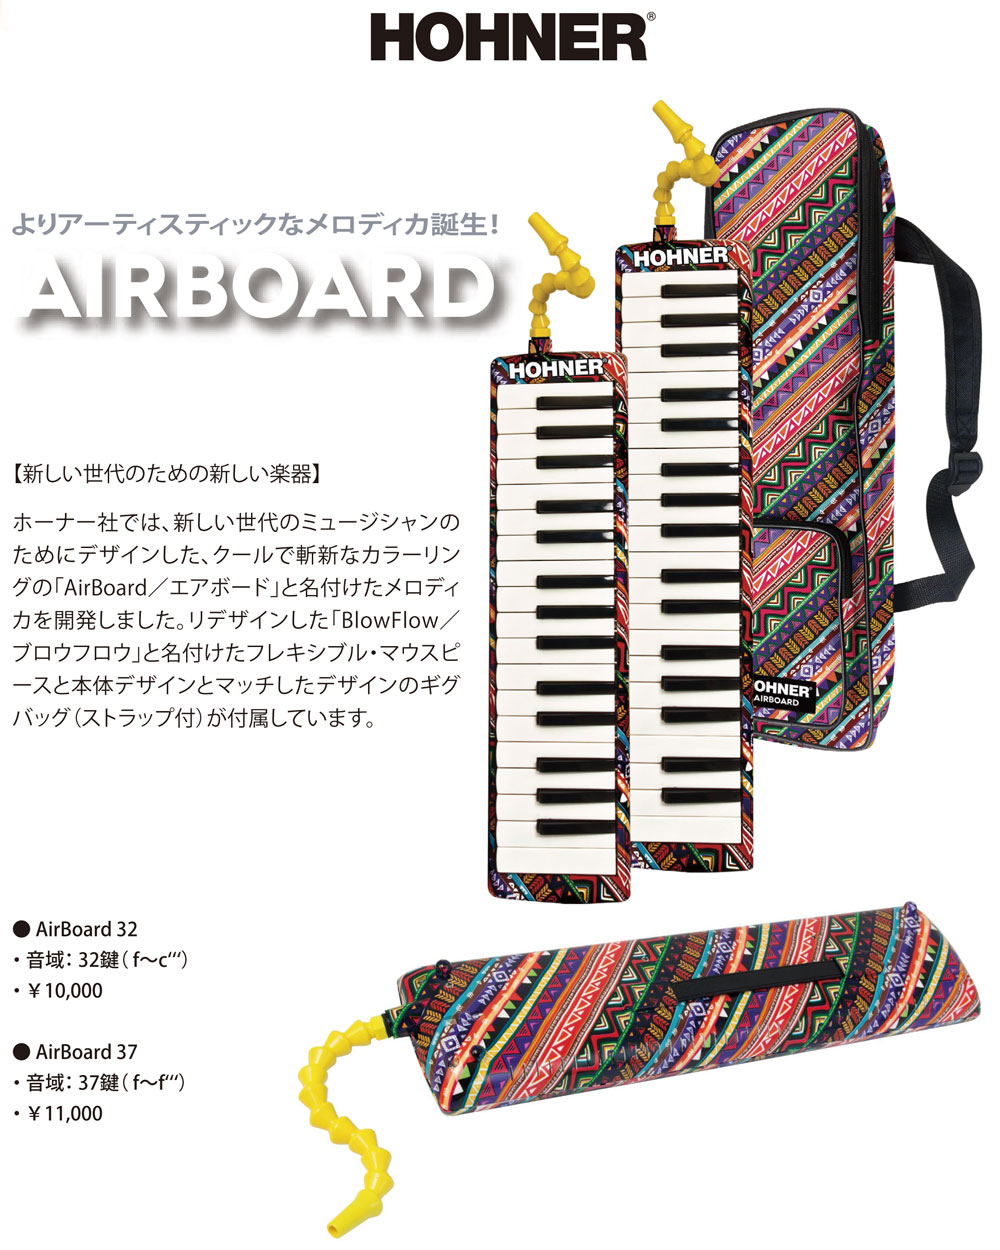 hohner_AIRBOARD